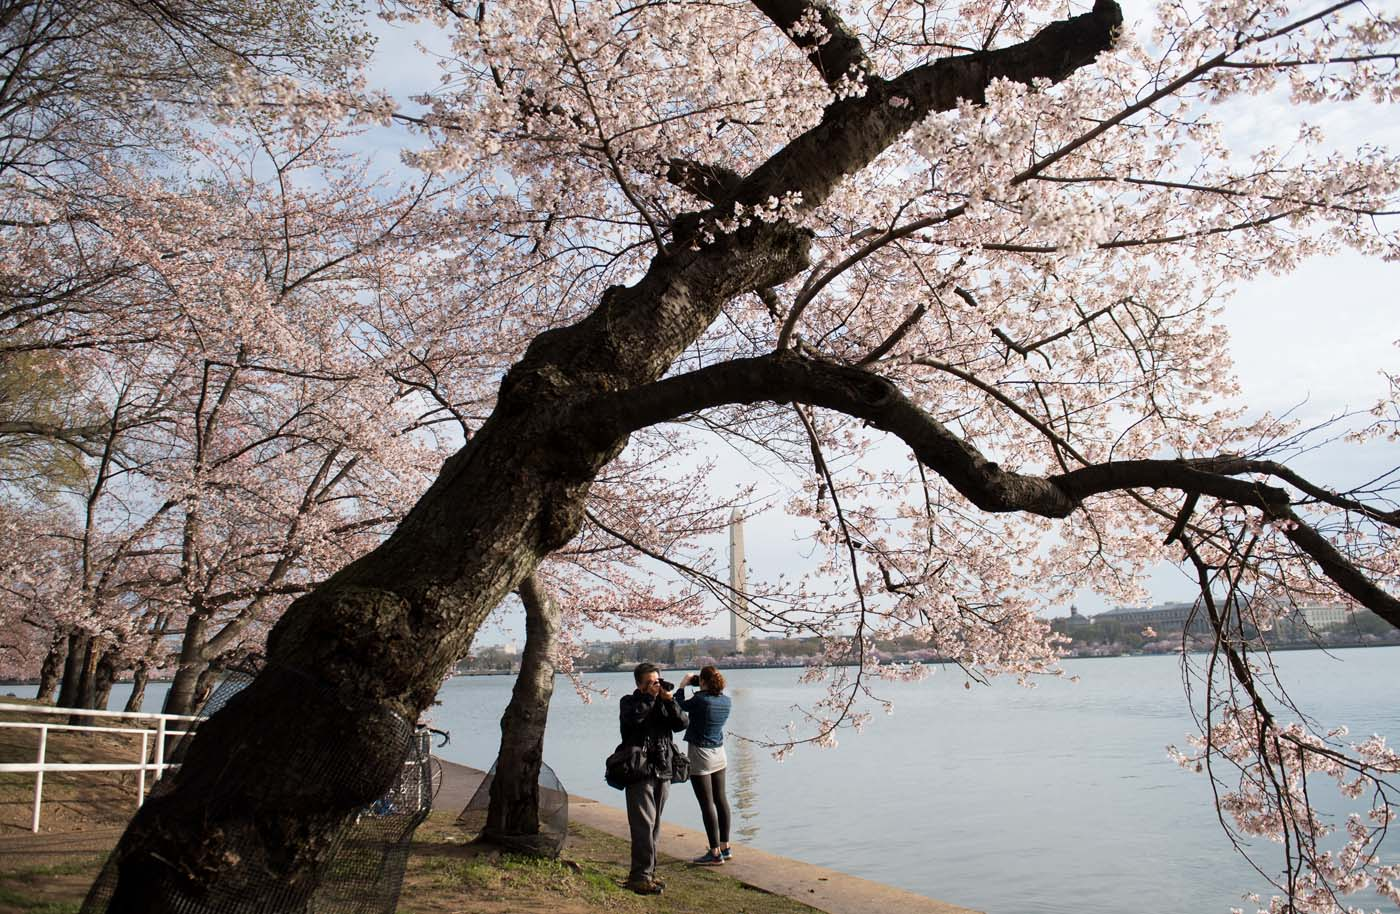 People photograph Cherry Blossom trees as they bloom around the Tidal Basin in Washington, DC, April 4, 2018. / AFP PHOTO / SAUL LOEB